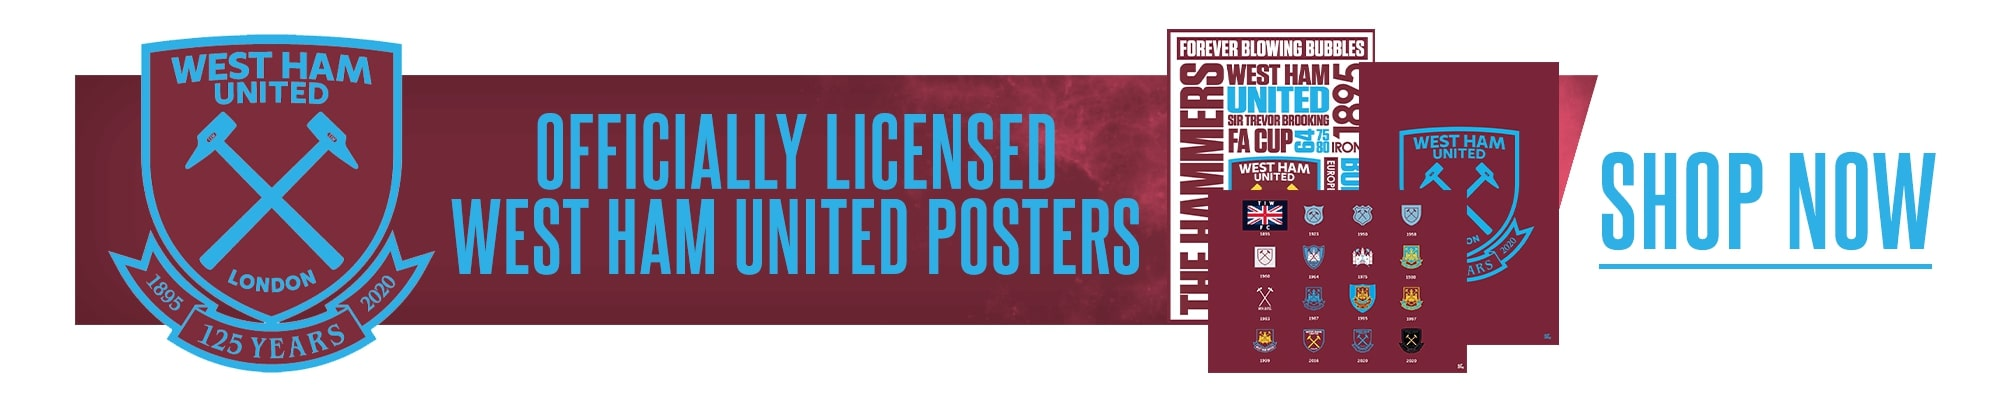 Official West Ham Posters